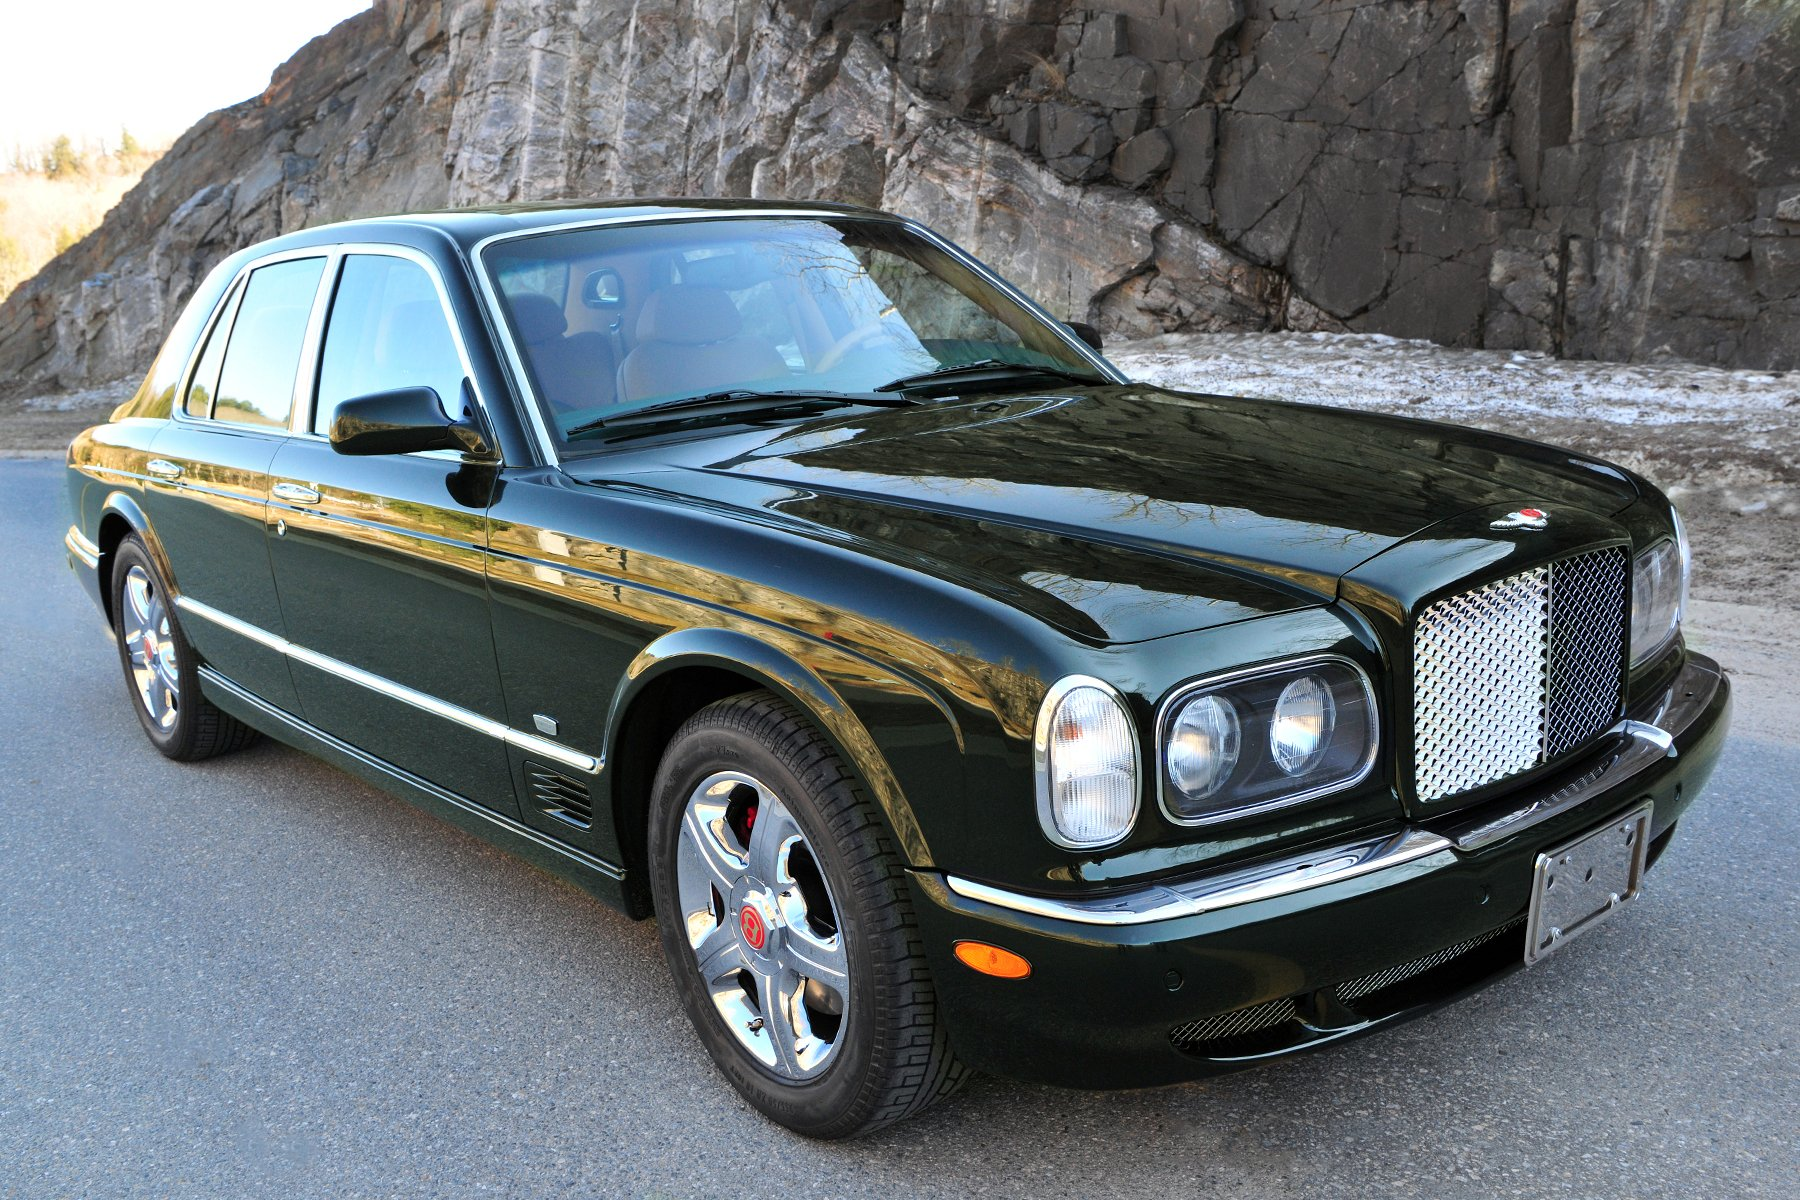 2001 Bentley Arnage Le Mans #CX06540